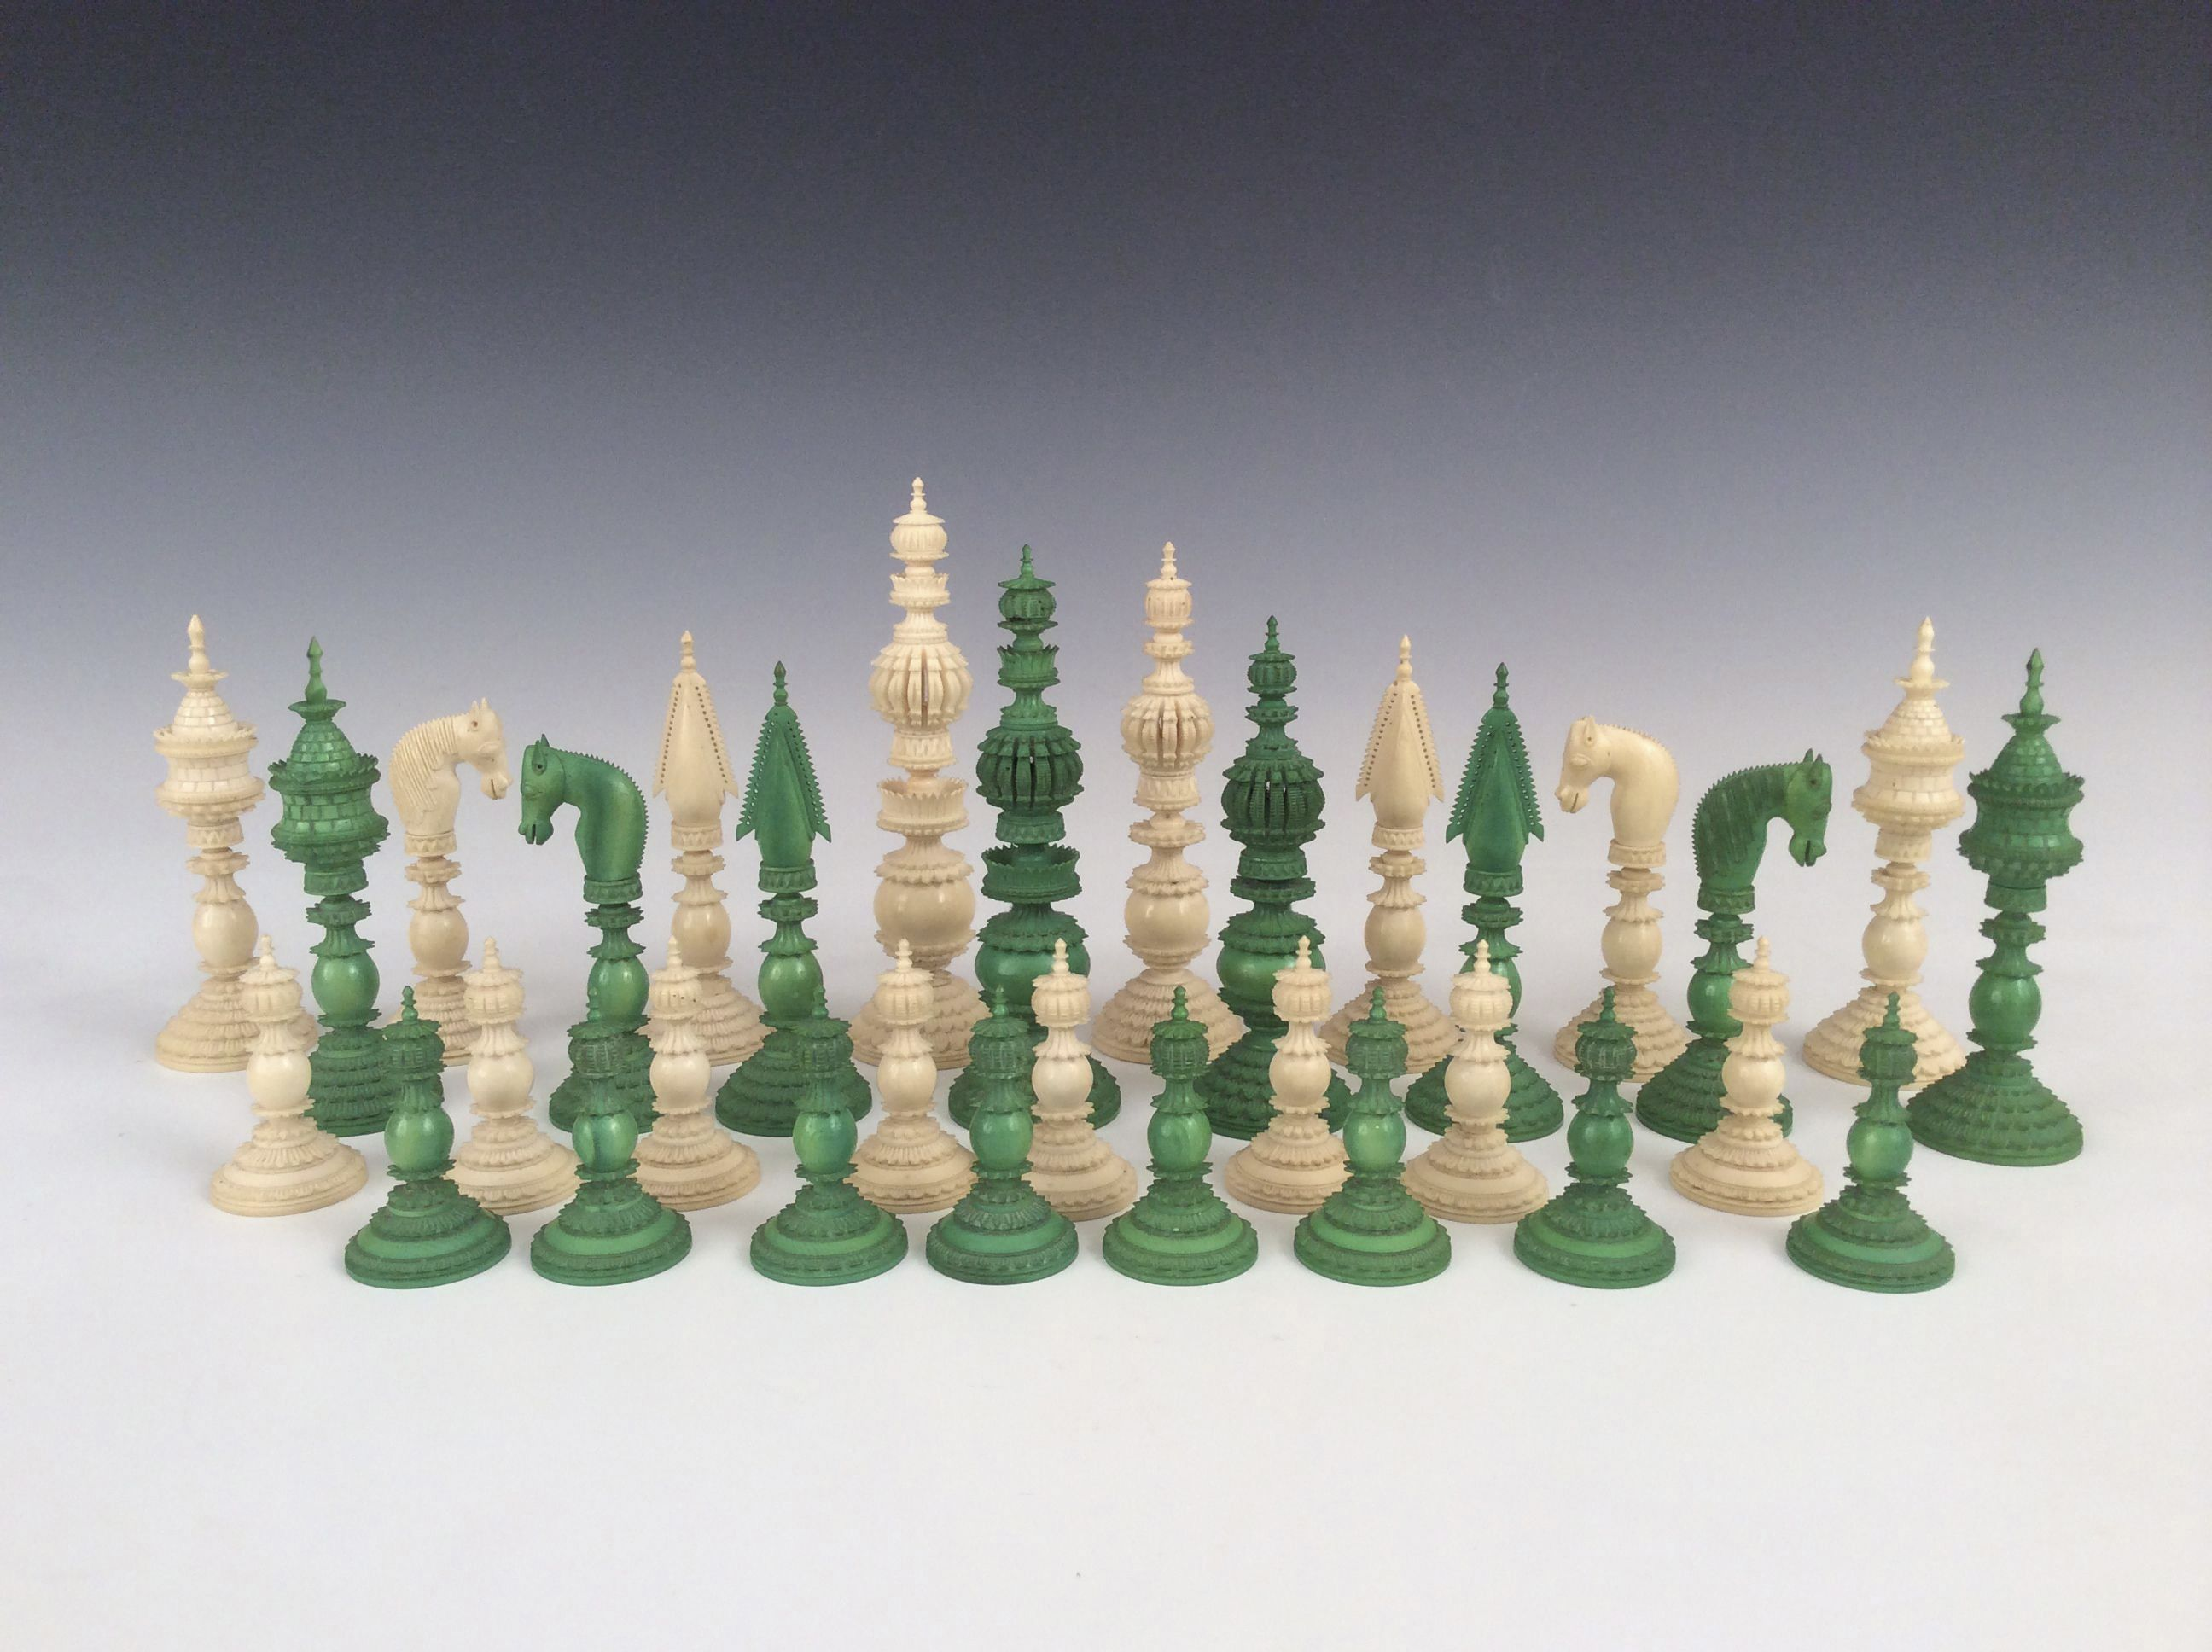 Antique green white ivory pepys chess set - Collectible chess sets ...